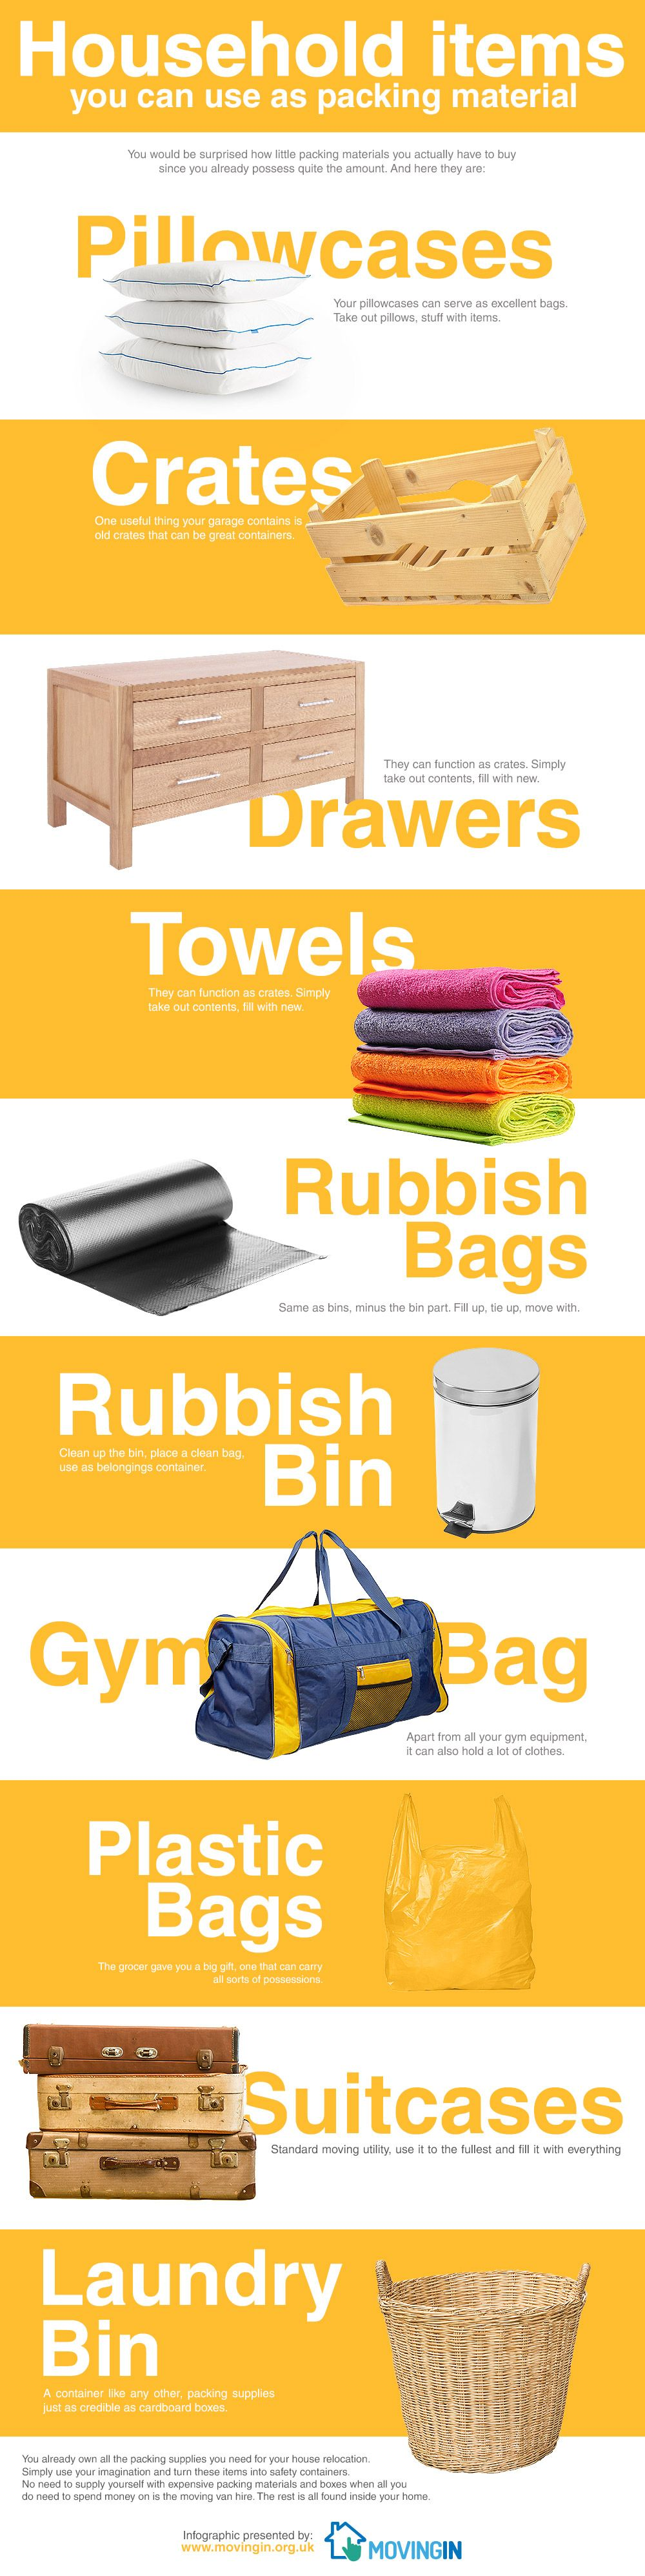 Items-You-Can-Use-for-Packing-infographic-plaza